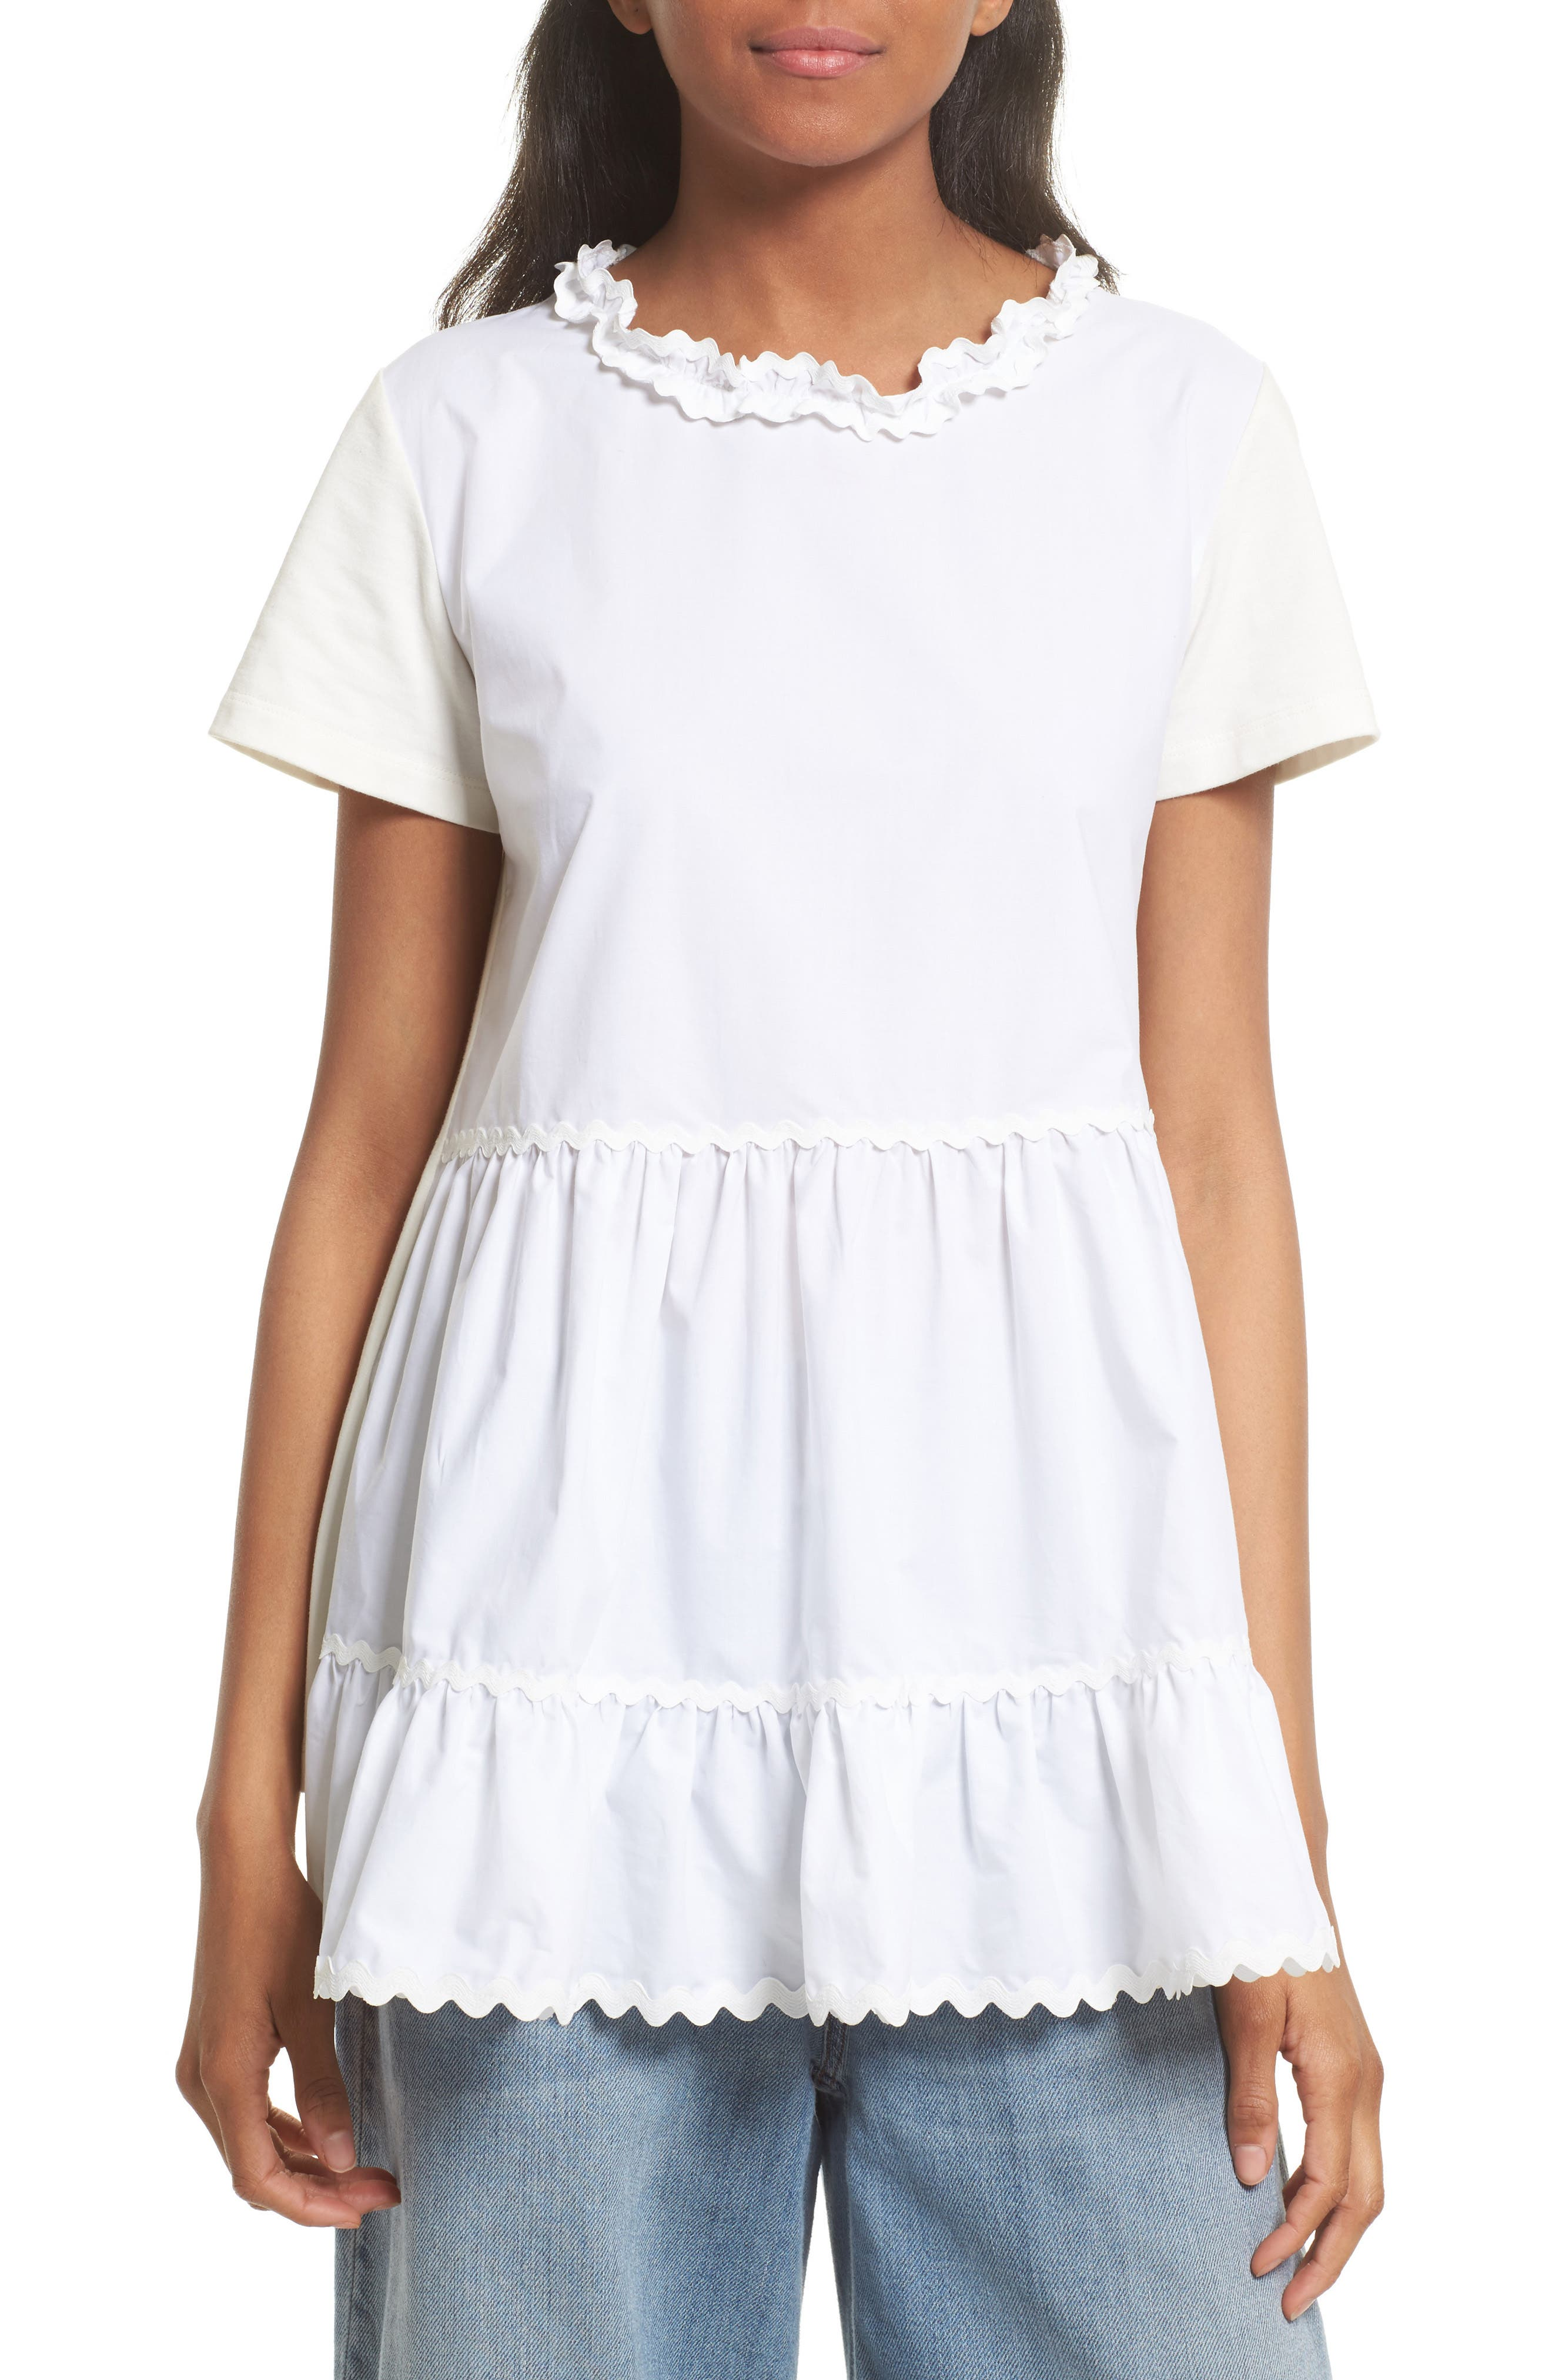 Tiered Ruffle Knit Top,                         Main,                         color, White/ Off White